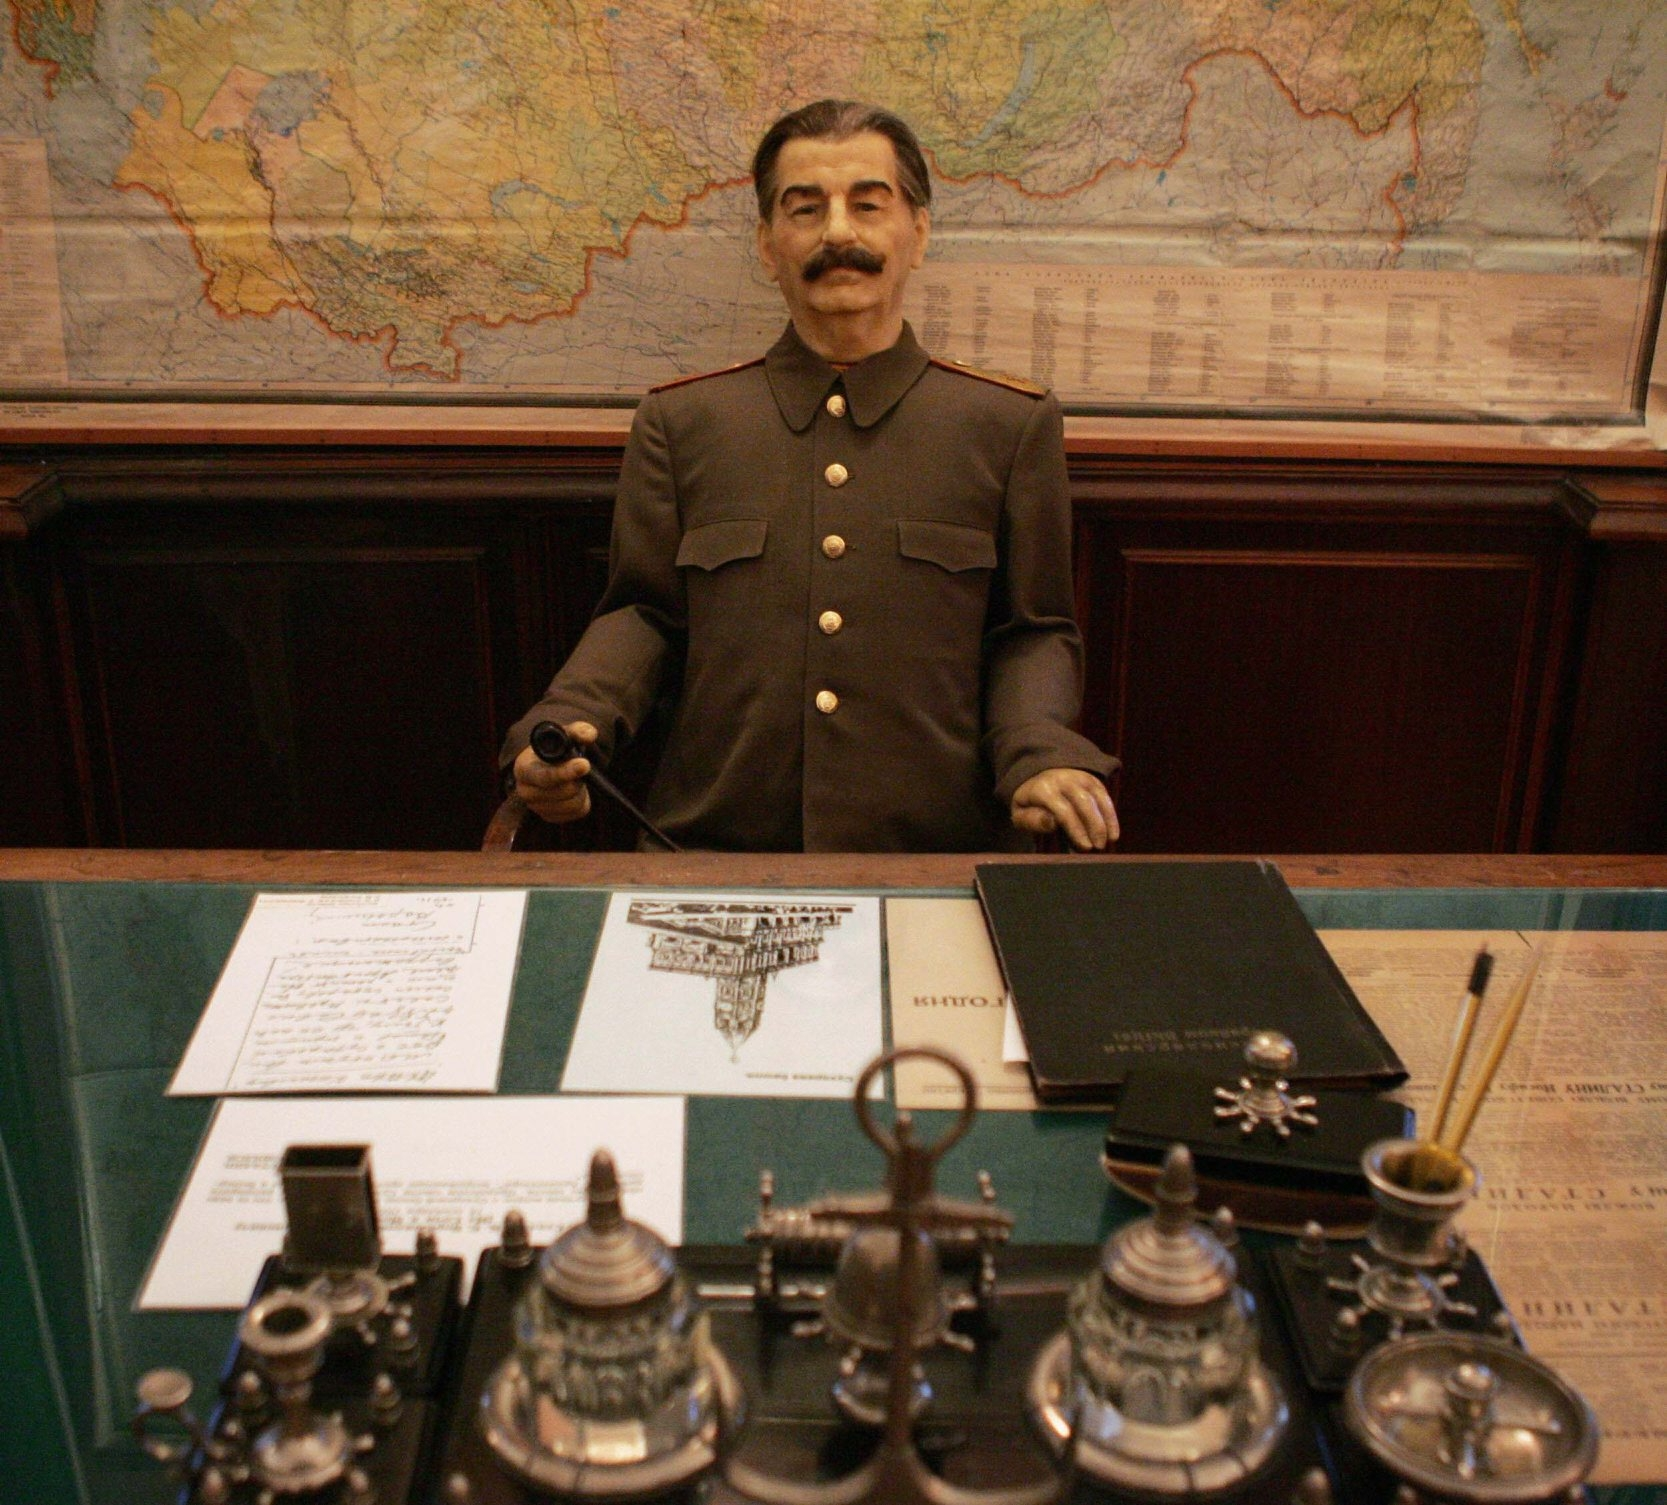 This life-size wax figure of Soviet leader Josef Stalin is on display at the museum that was once his summer home in Sochi, Russia.